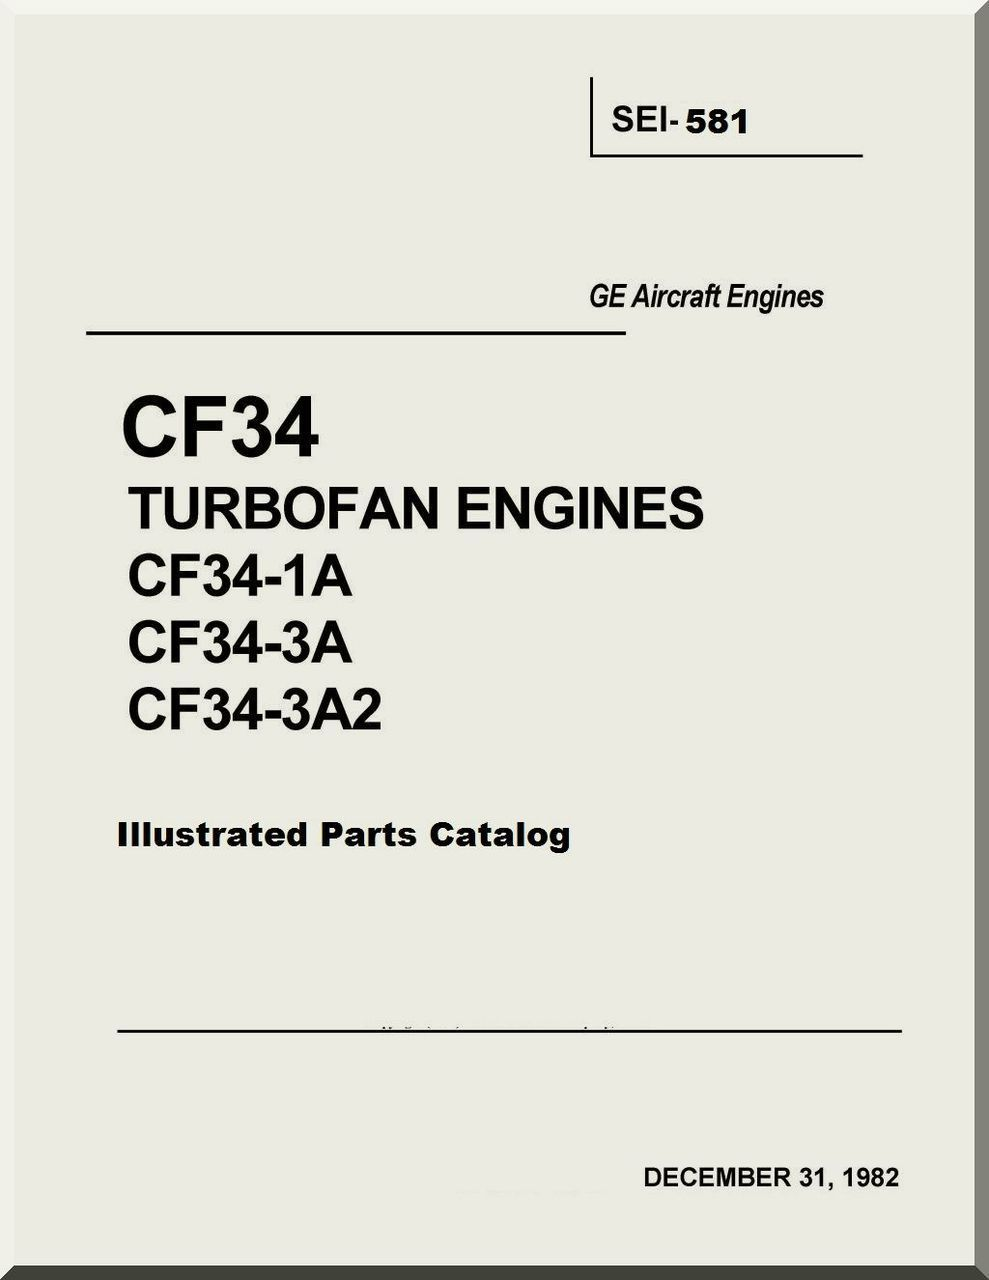 hight resolution of  illustrated parts catalog manual sei 581 aircraft reports aircraft manuals aircraft helicopter engines propellers blueprints publications